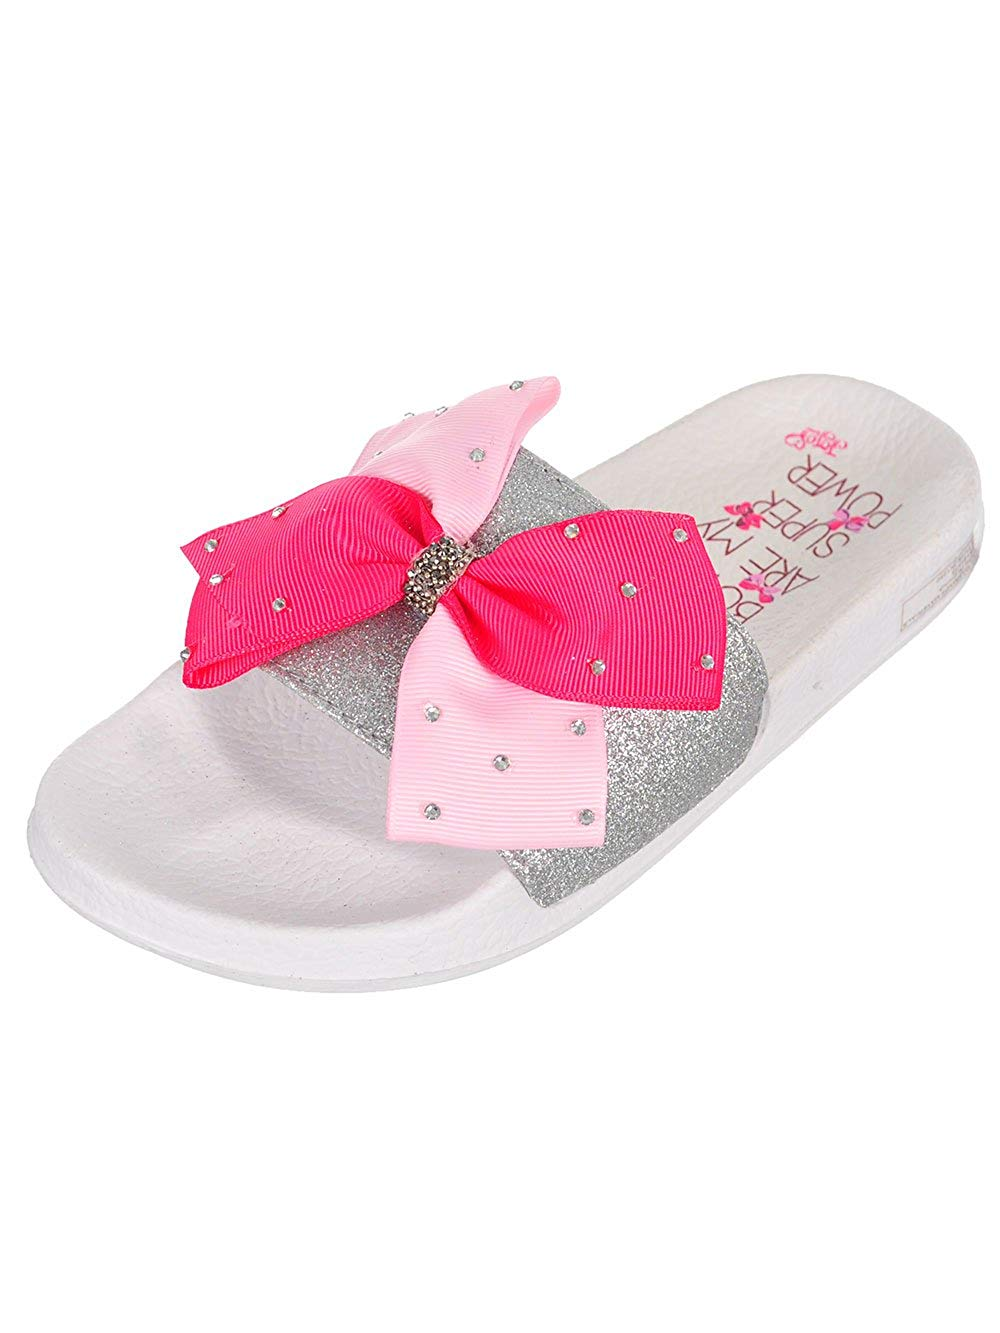 8a2354c748e7 Get Quotations · Jojo Siwa Girls  Slide Sandals